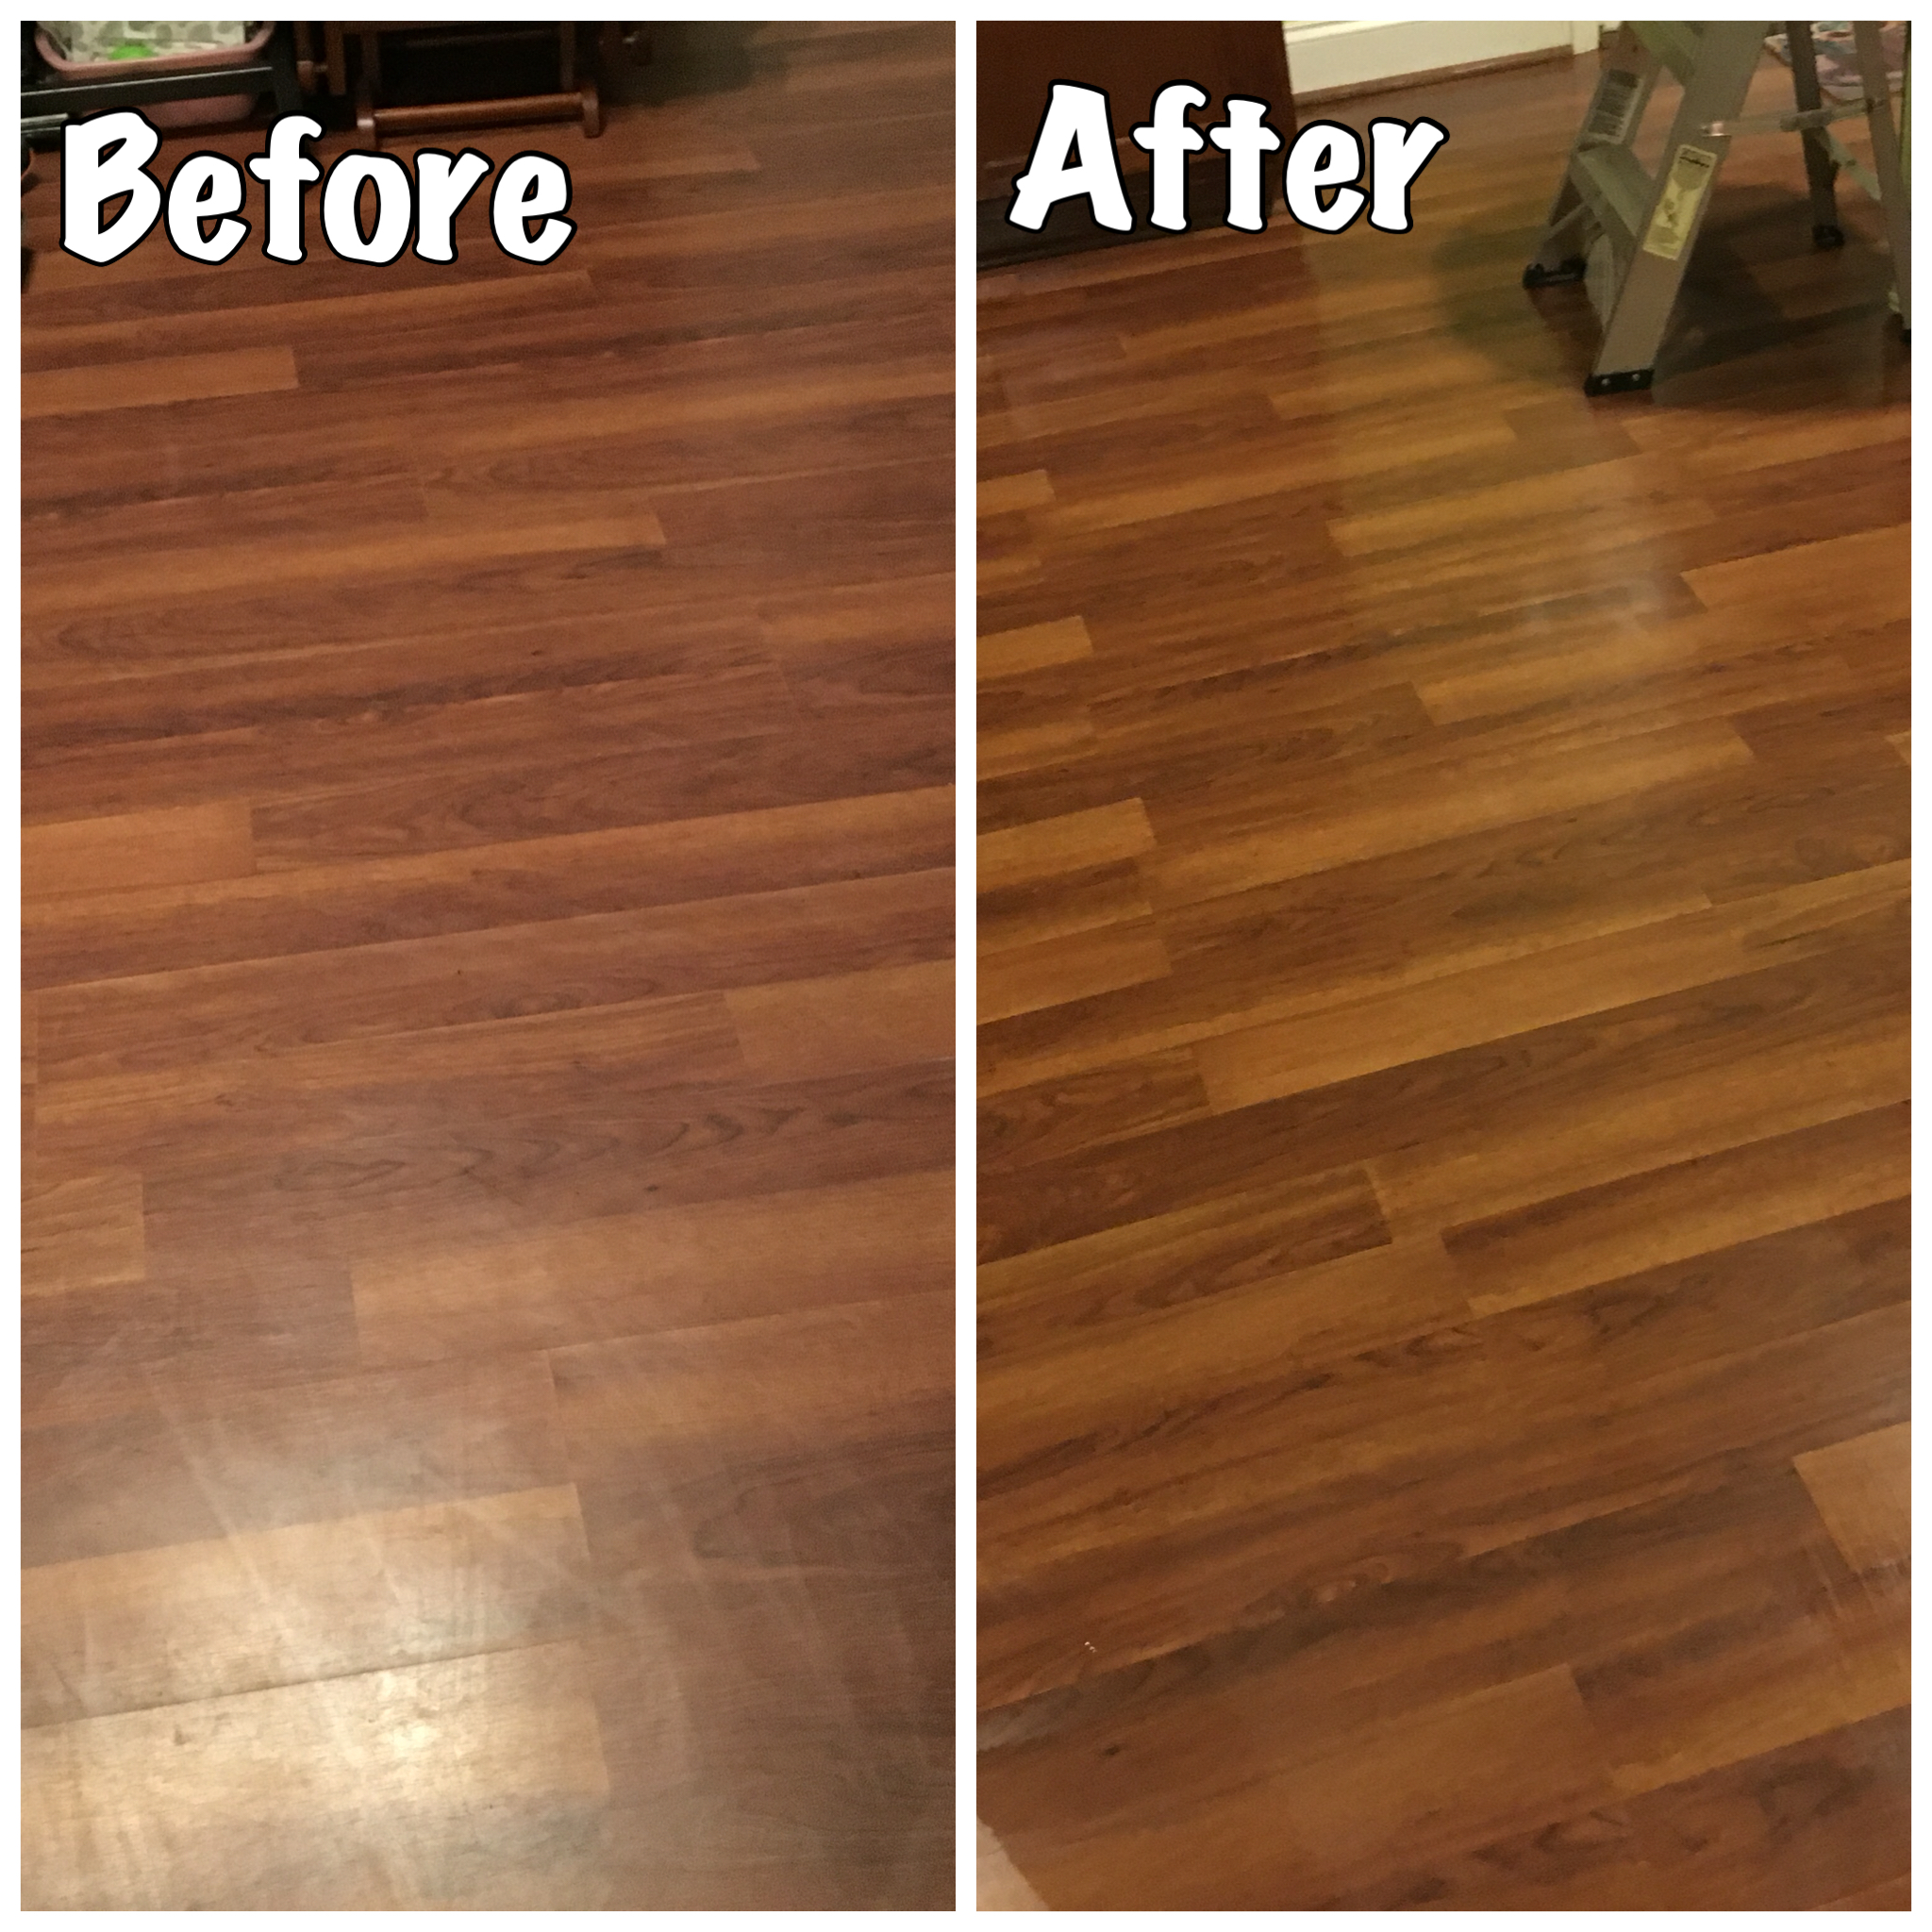 Make Your Laminate Floors Shine